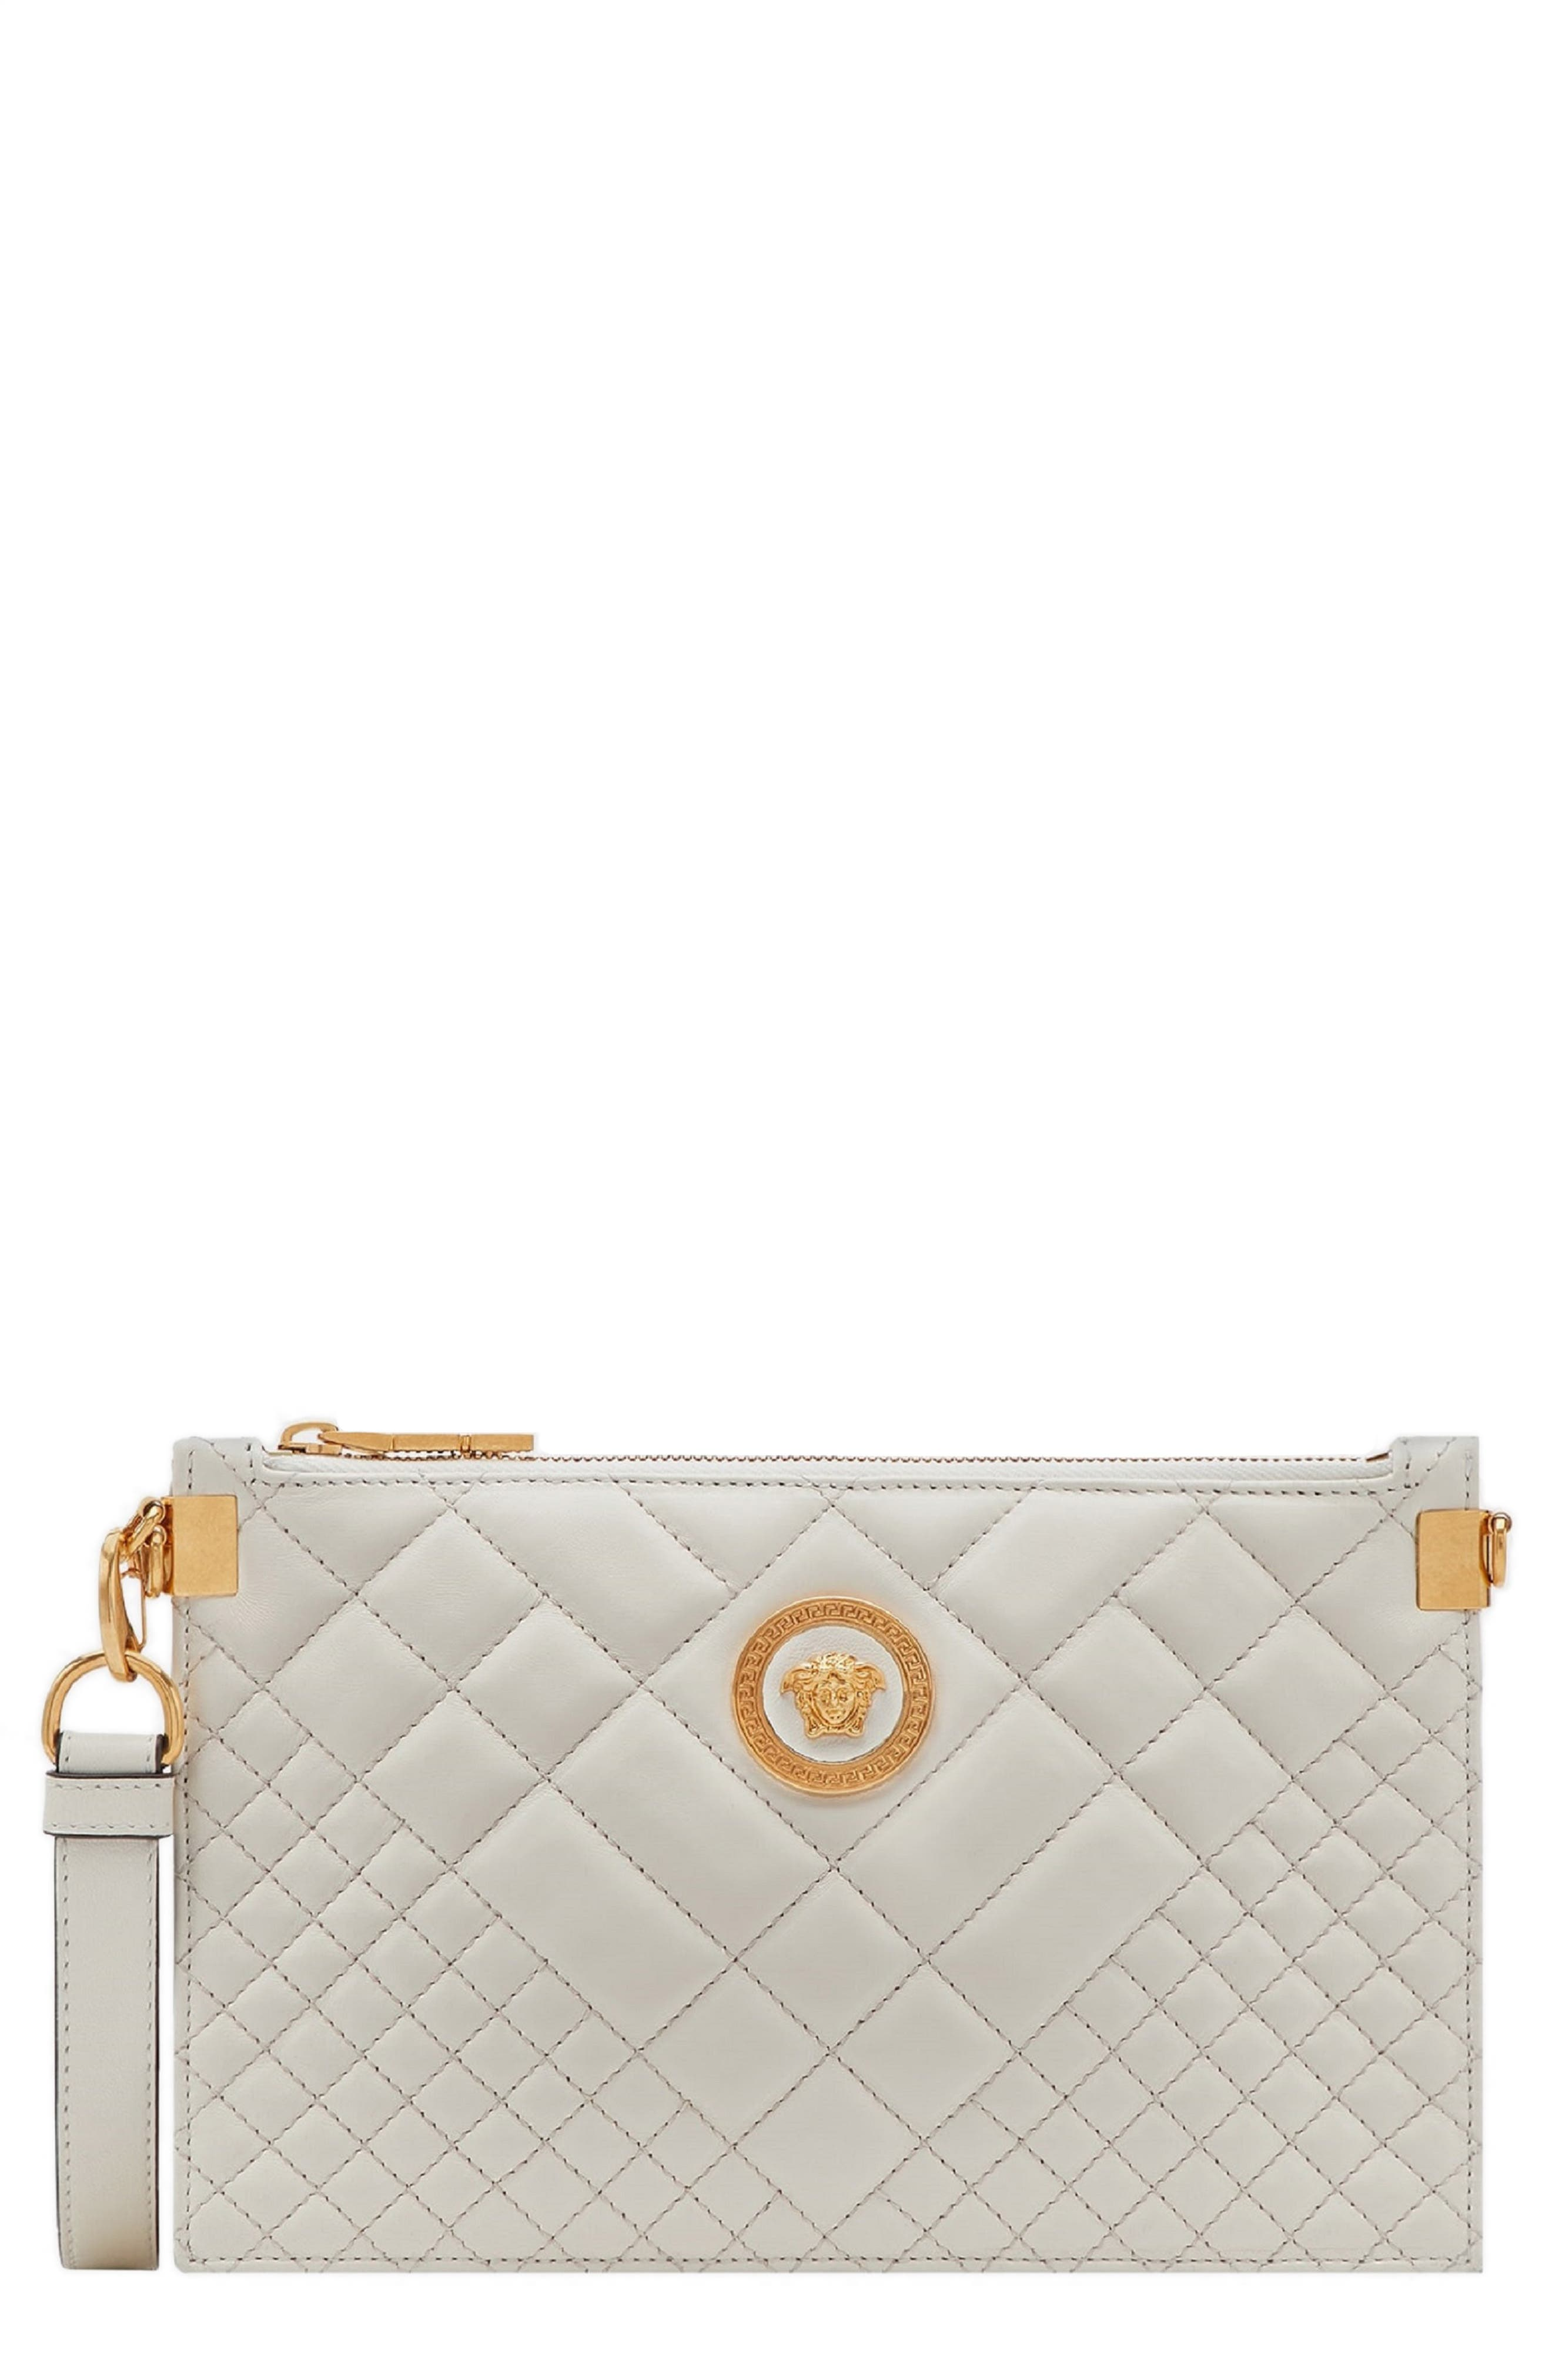 Tribute Icon Quilted Leather Pouch,                         Main,                         color, OFF WHITE/ GOLD